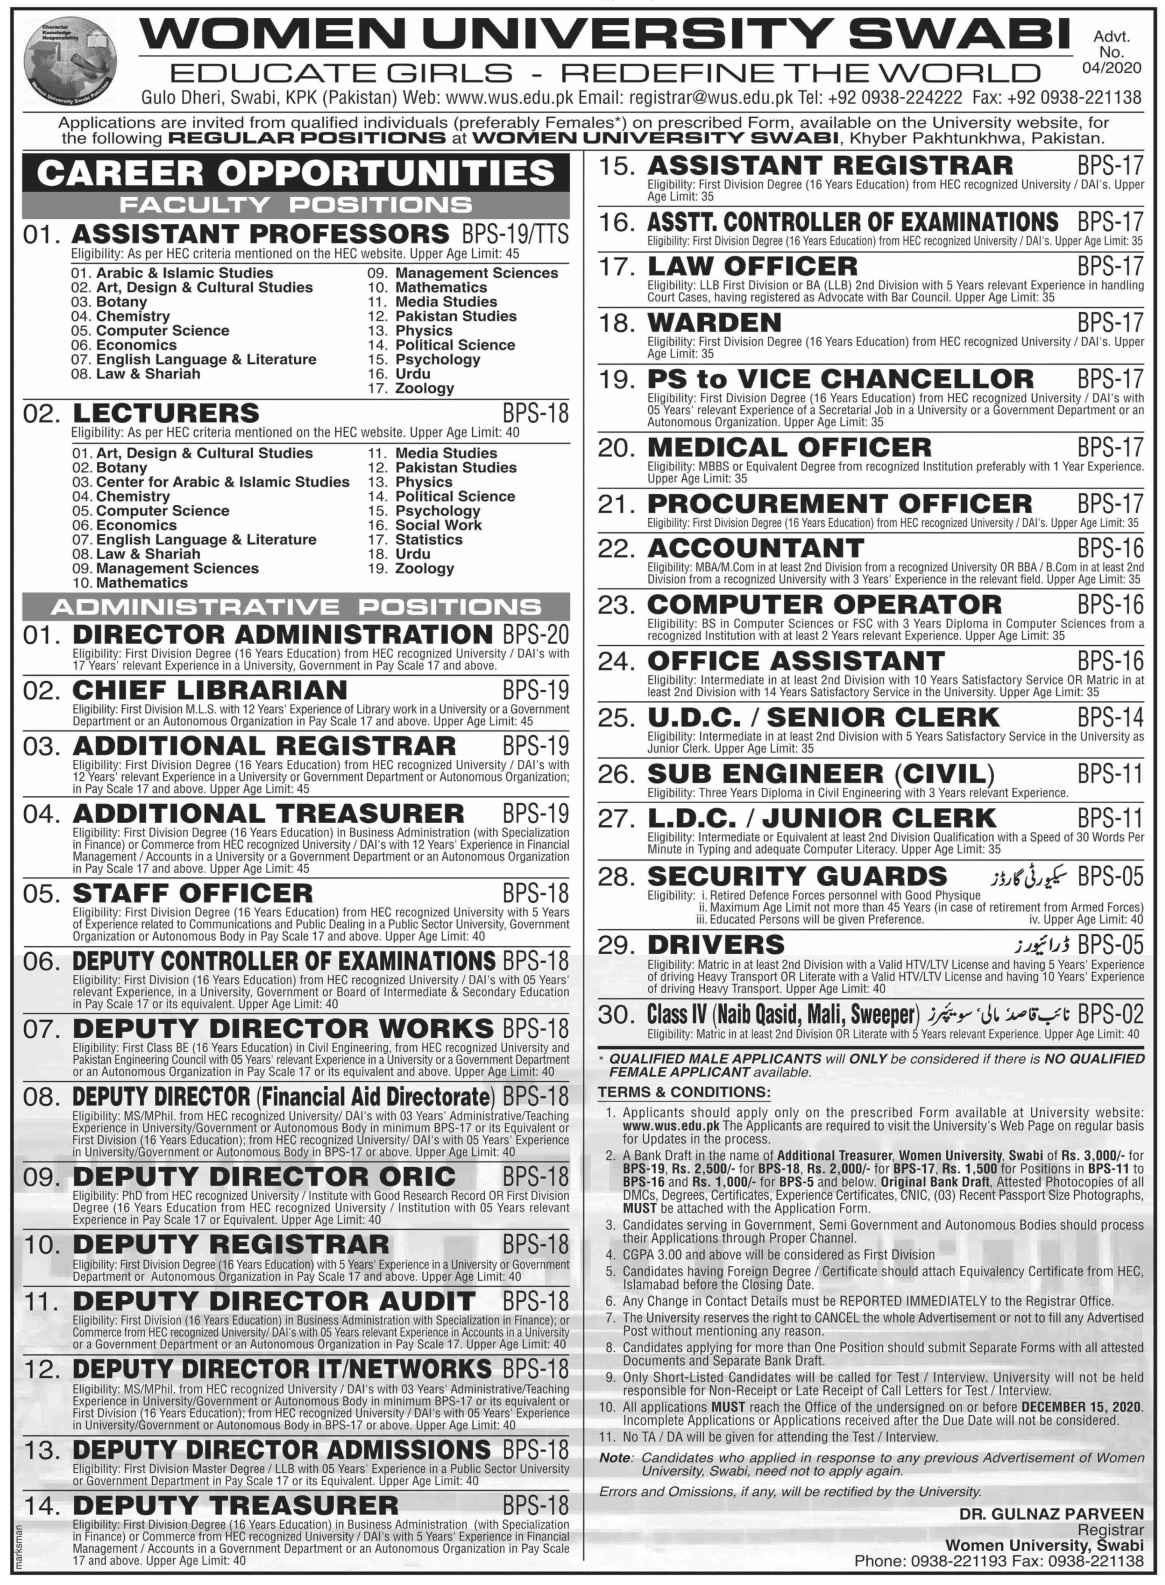 Women University Swabi Jobs Teaching & Non Teaching Staff 2020 for Accountant, Computer Operator, Office Assistant, Upper Division Clerk, UDC, Clerk and more